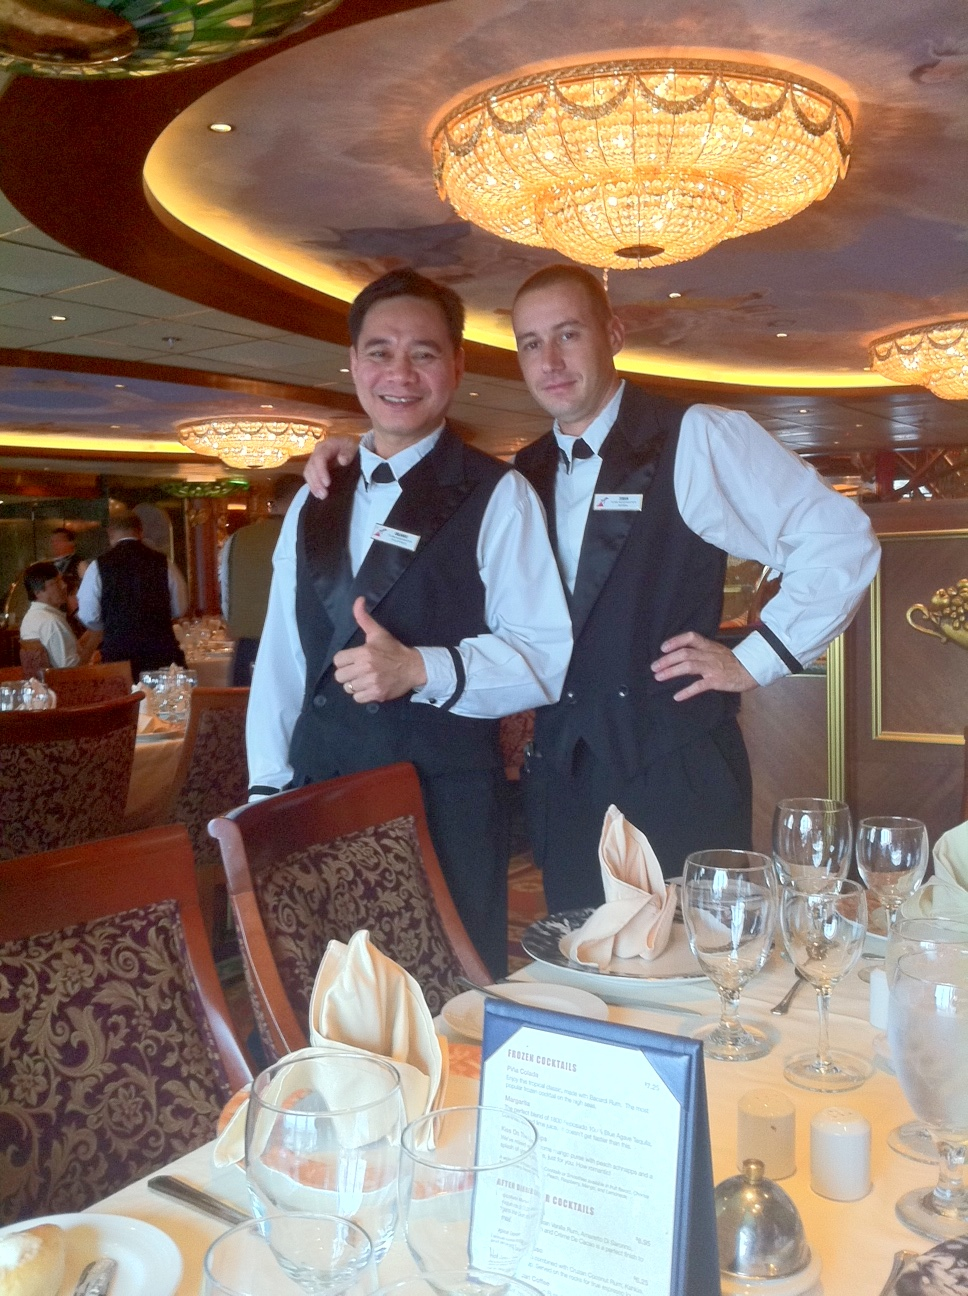 The Food In Empire Dining Room Was Always Good And Servings Way Too Big Or At Least They Seemed After Eating On Lido Deck Snacking